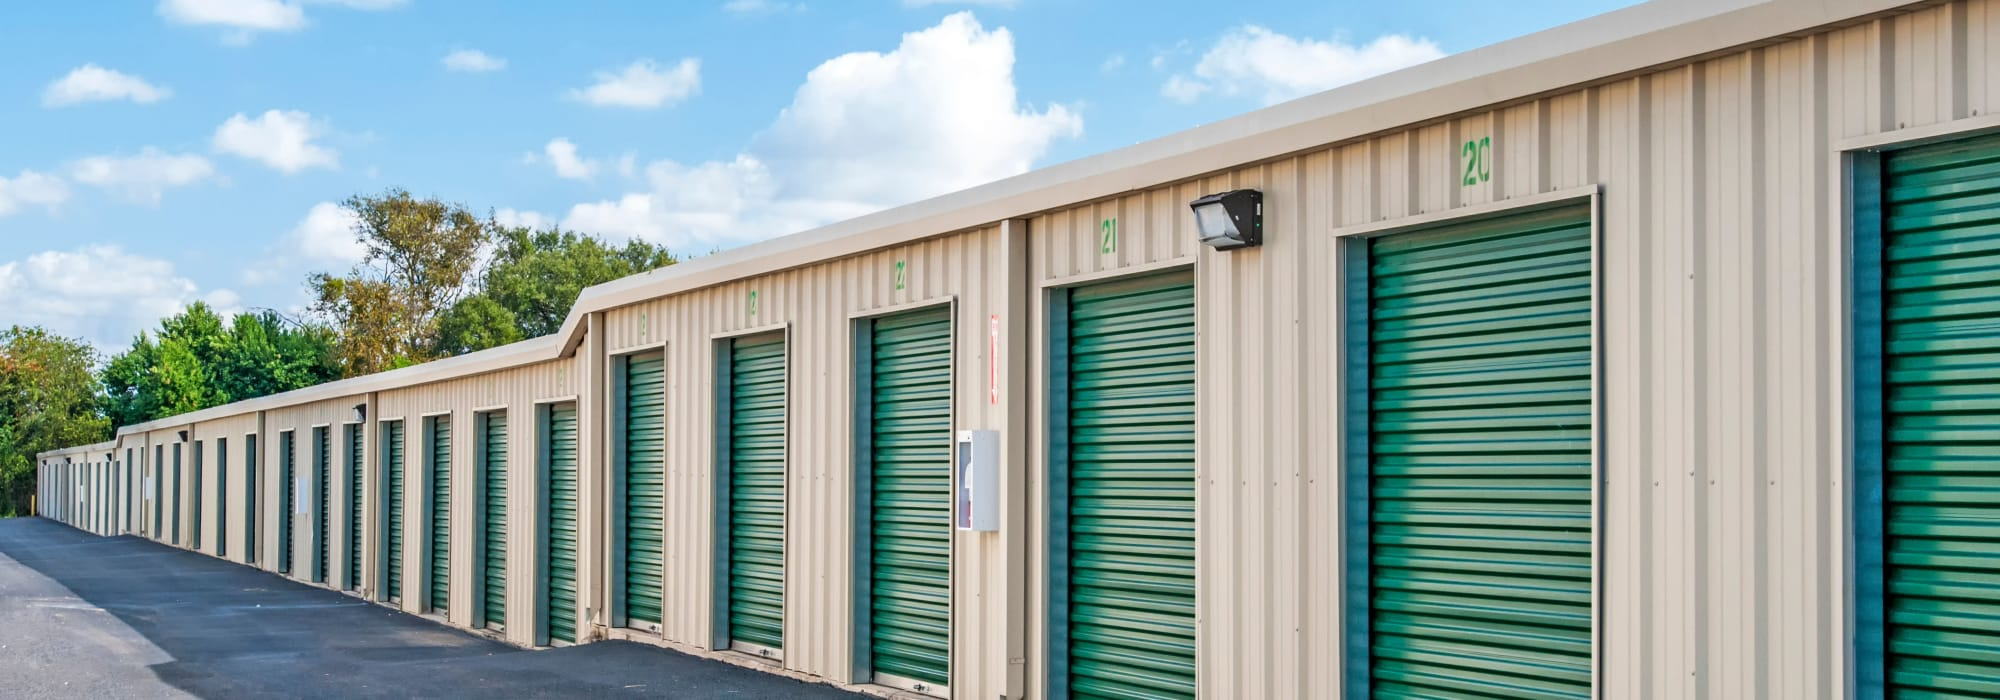 The drive-up storage units available for rent at Lockaway Storage in San Antonio, Texas